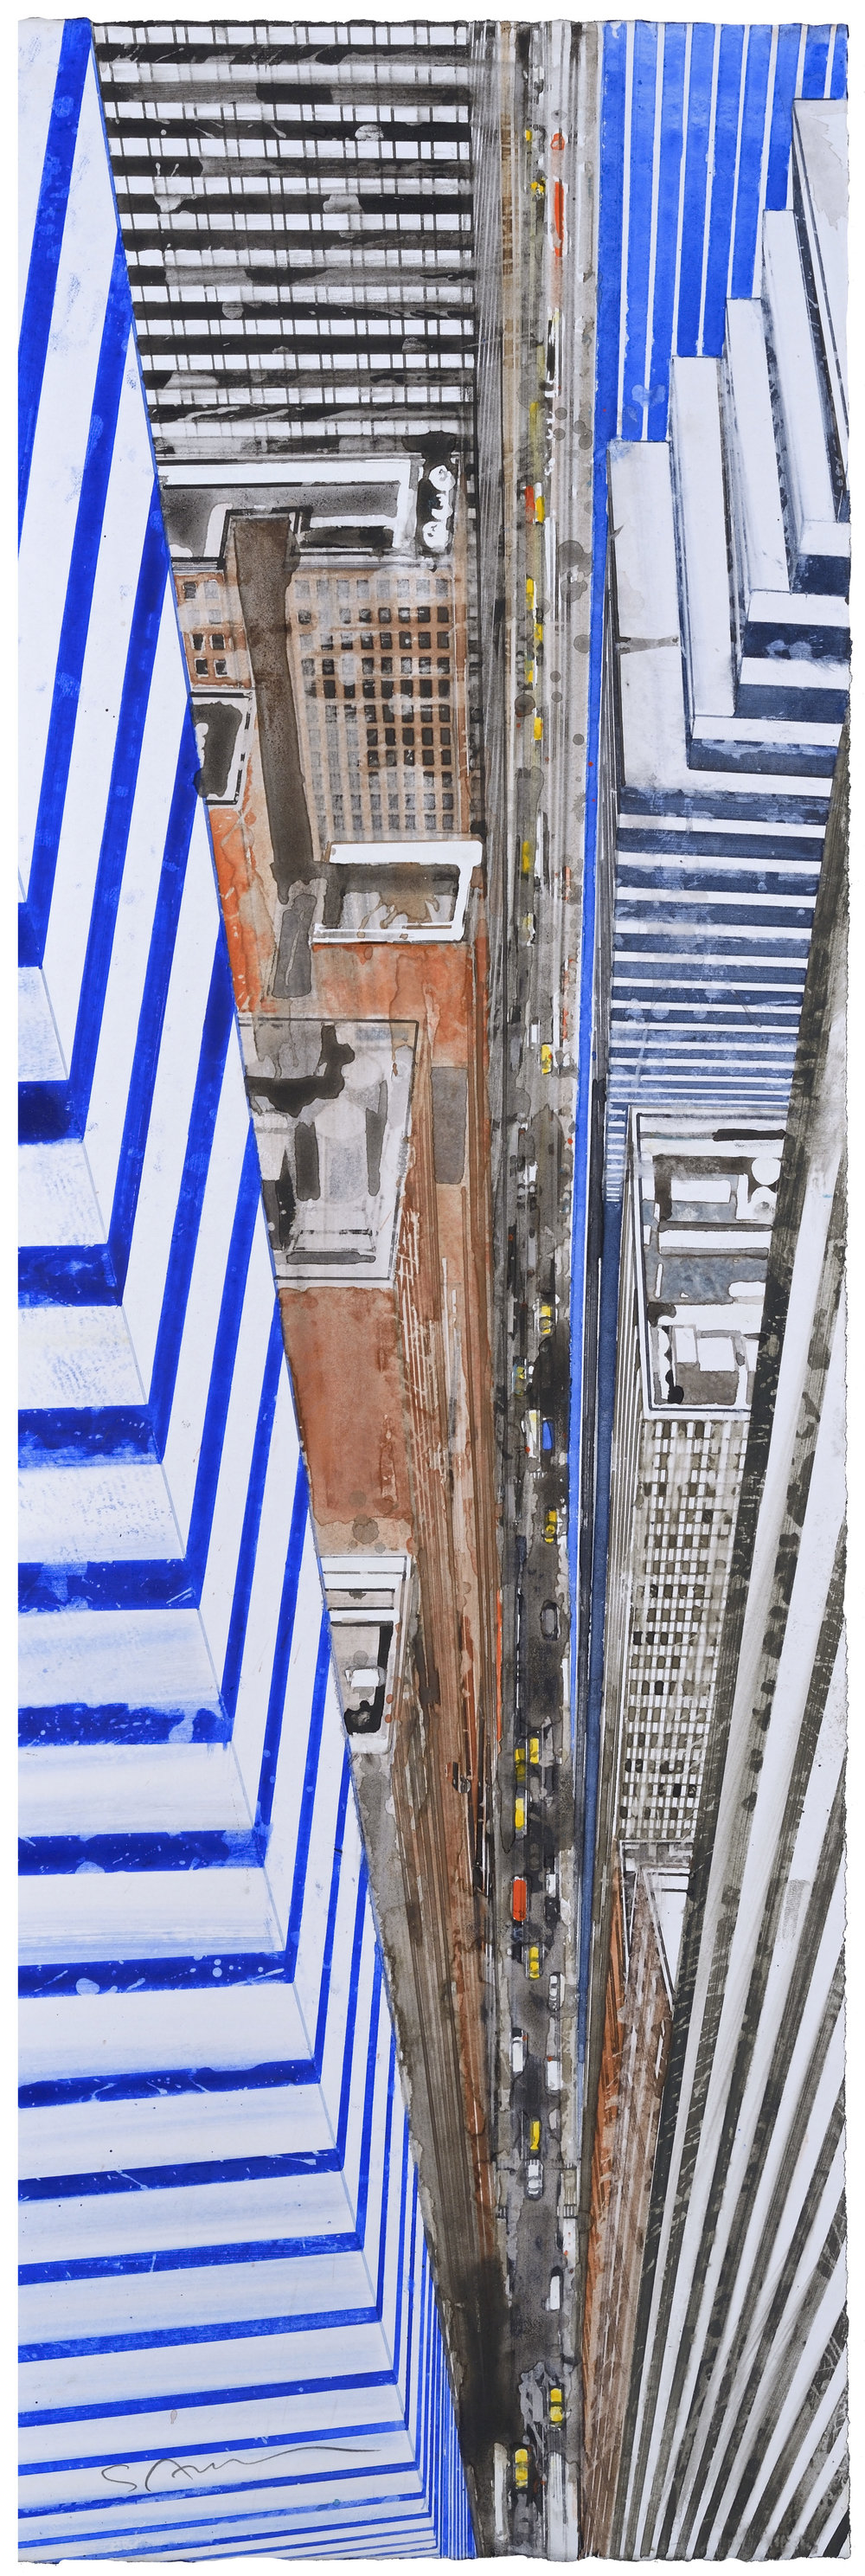 From Helicopter VI, watercolor, 64 x 20 cm, 25 x 8 in, 2016